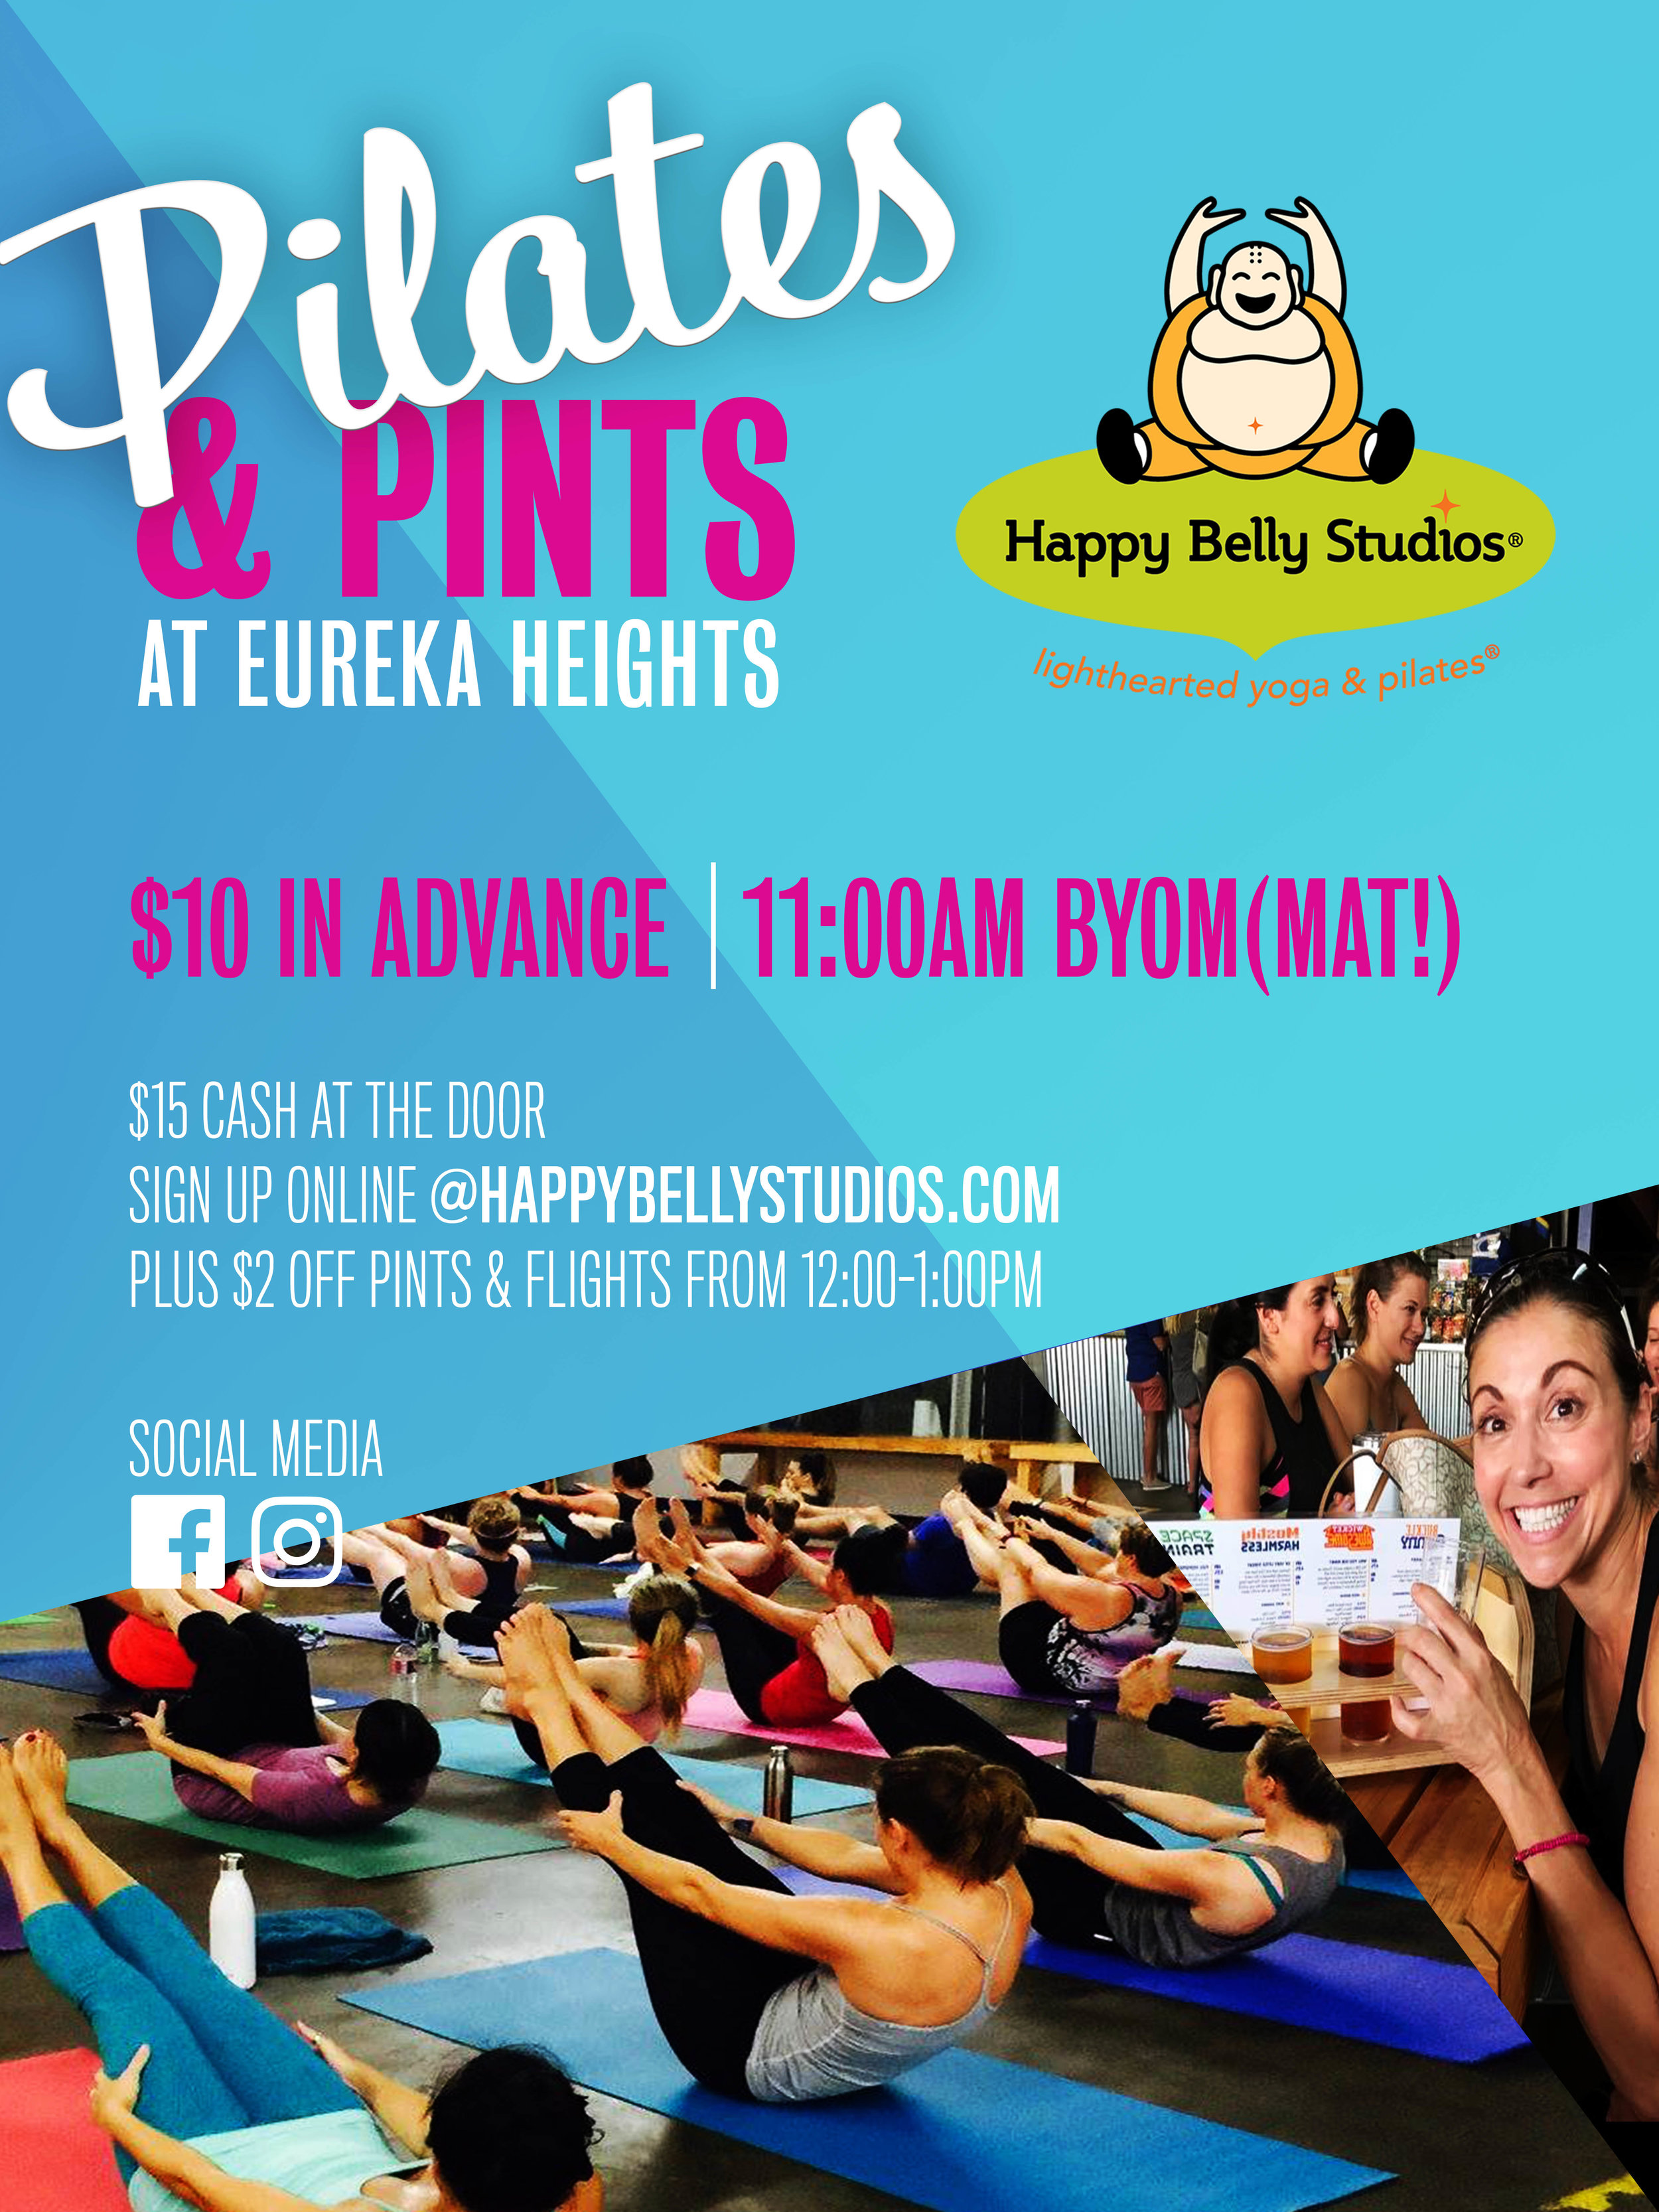 Pilates & Pints at Eureka Heights - Join us Saturday, Nov 9 at 11:00AM for our seasonal Pilates & Pints! Grab your mat and drinking buddy and head to Eureka Heights Brew Co for a Pilates mat class followed by $2 off pints and flights from 12:00-1:00PM. Sign up now to reserve your spot!$10 in advance; $15 CASH at the door. **We reserve the right to cancel this event due to low attendance.FIRST CLASS IS FREE WITH PROMO CODE WELOVEBEER